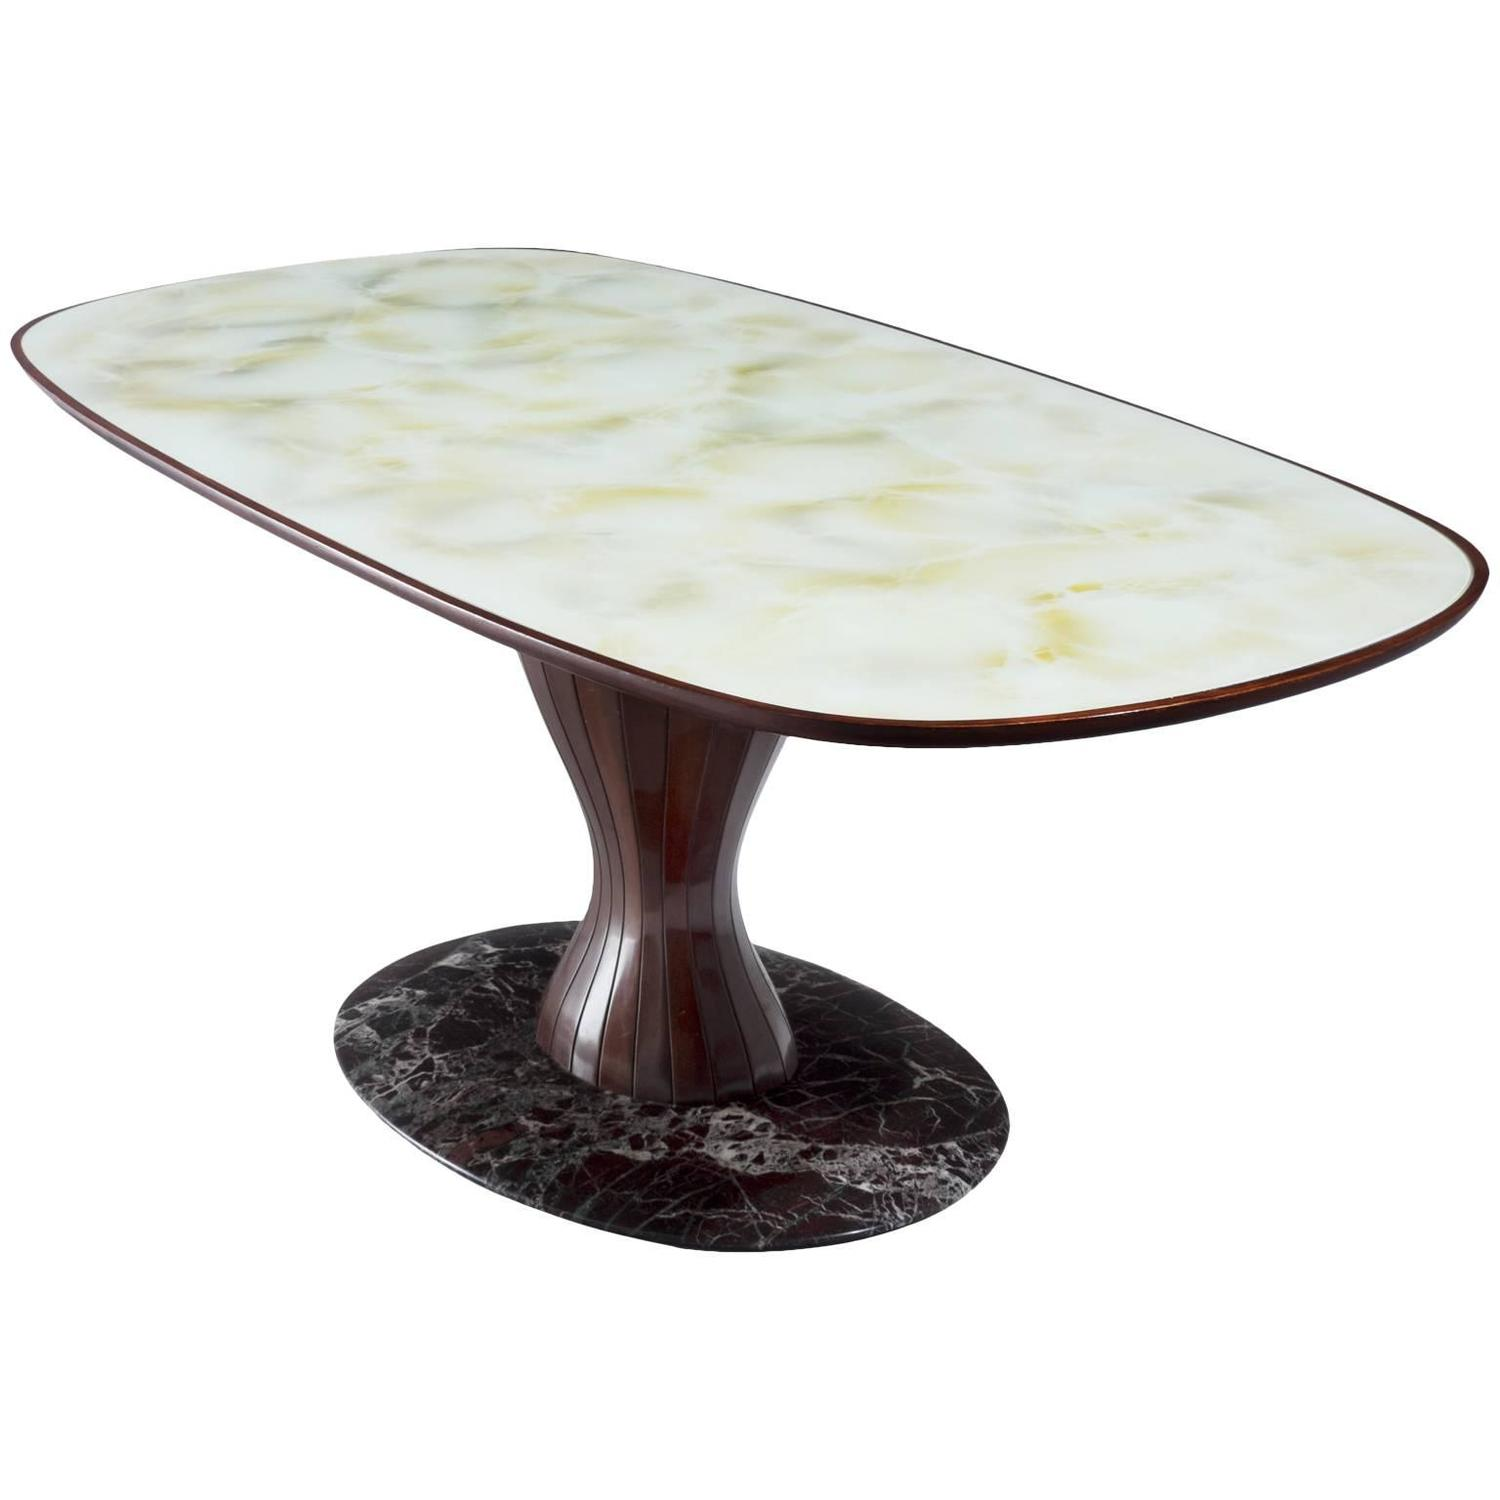 decoration modern dining idea table amazing creative designs square pedestal trendy